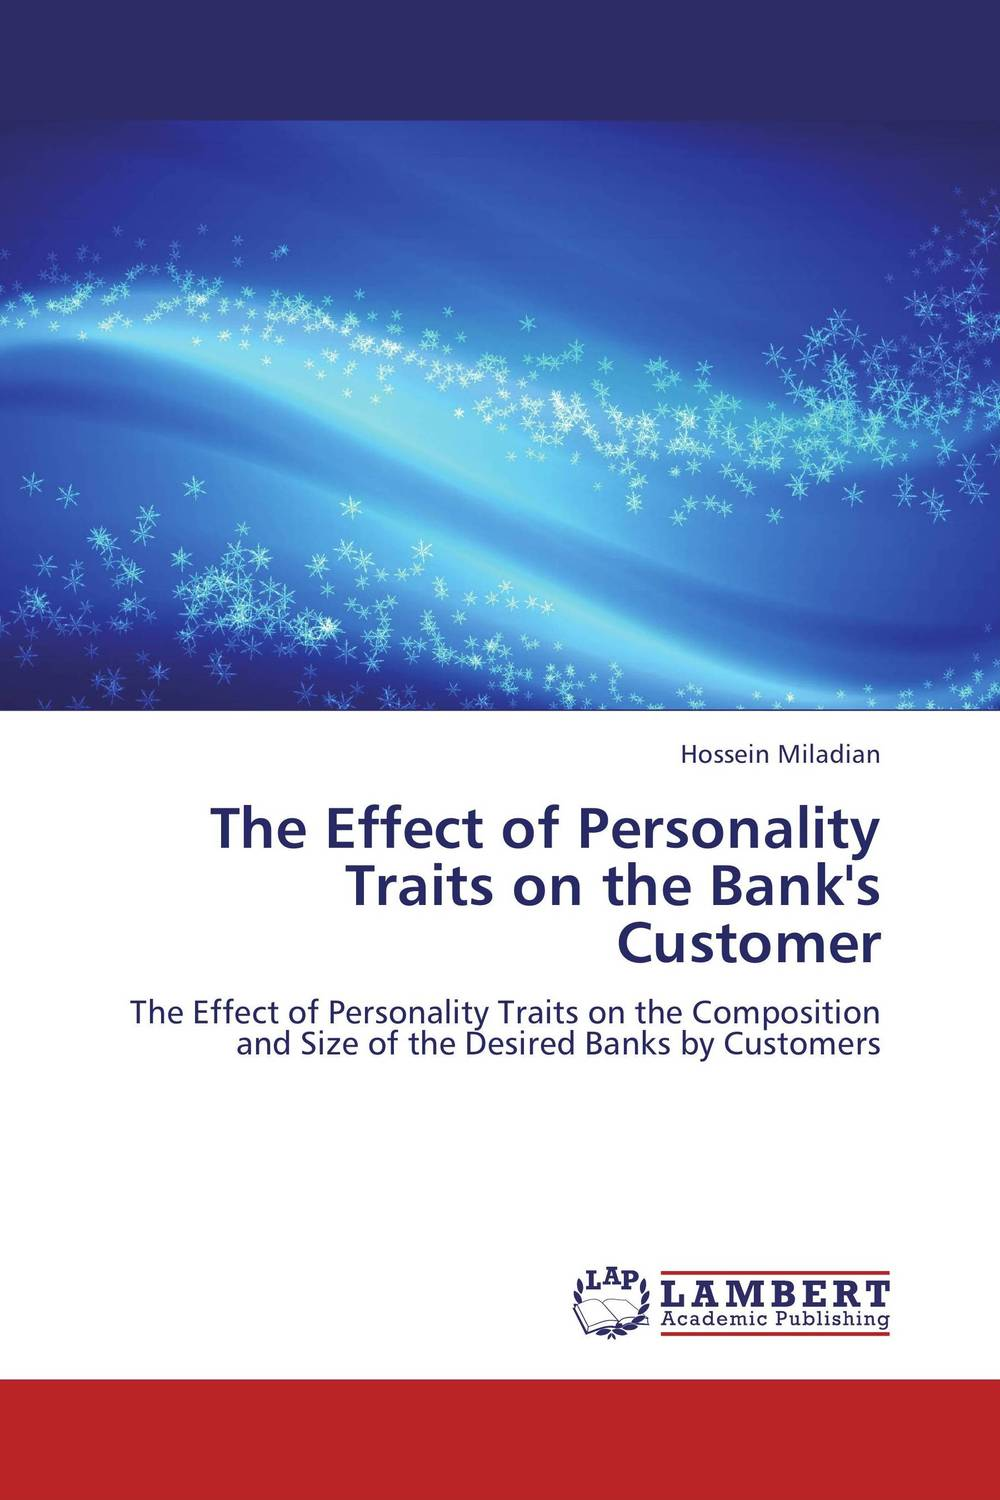 The Effect of Personality Traits on the Bank's Customer some postpartum characteristics of rabbit doe